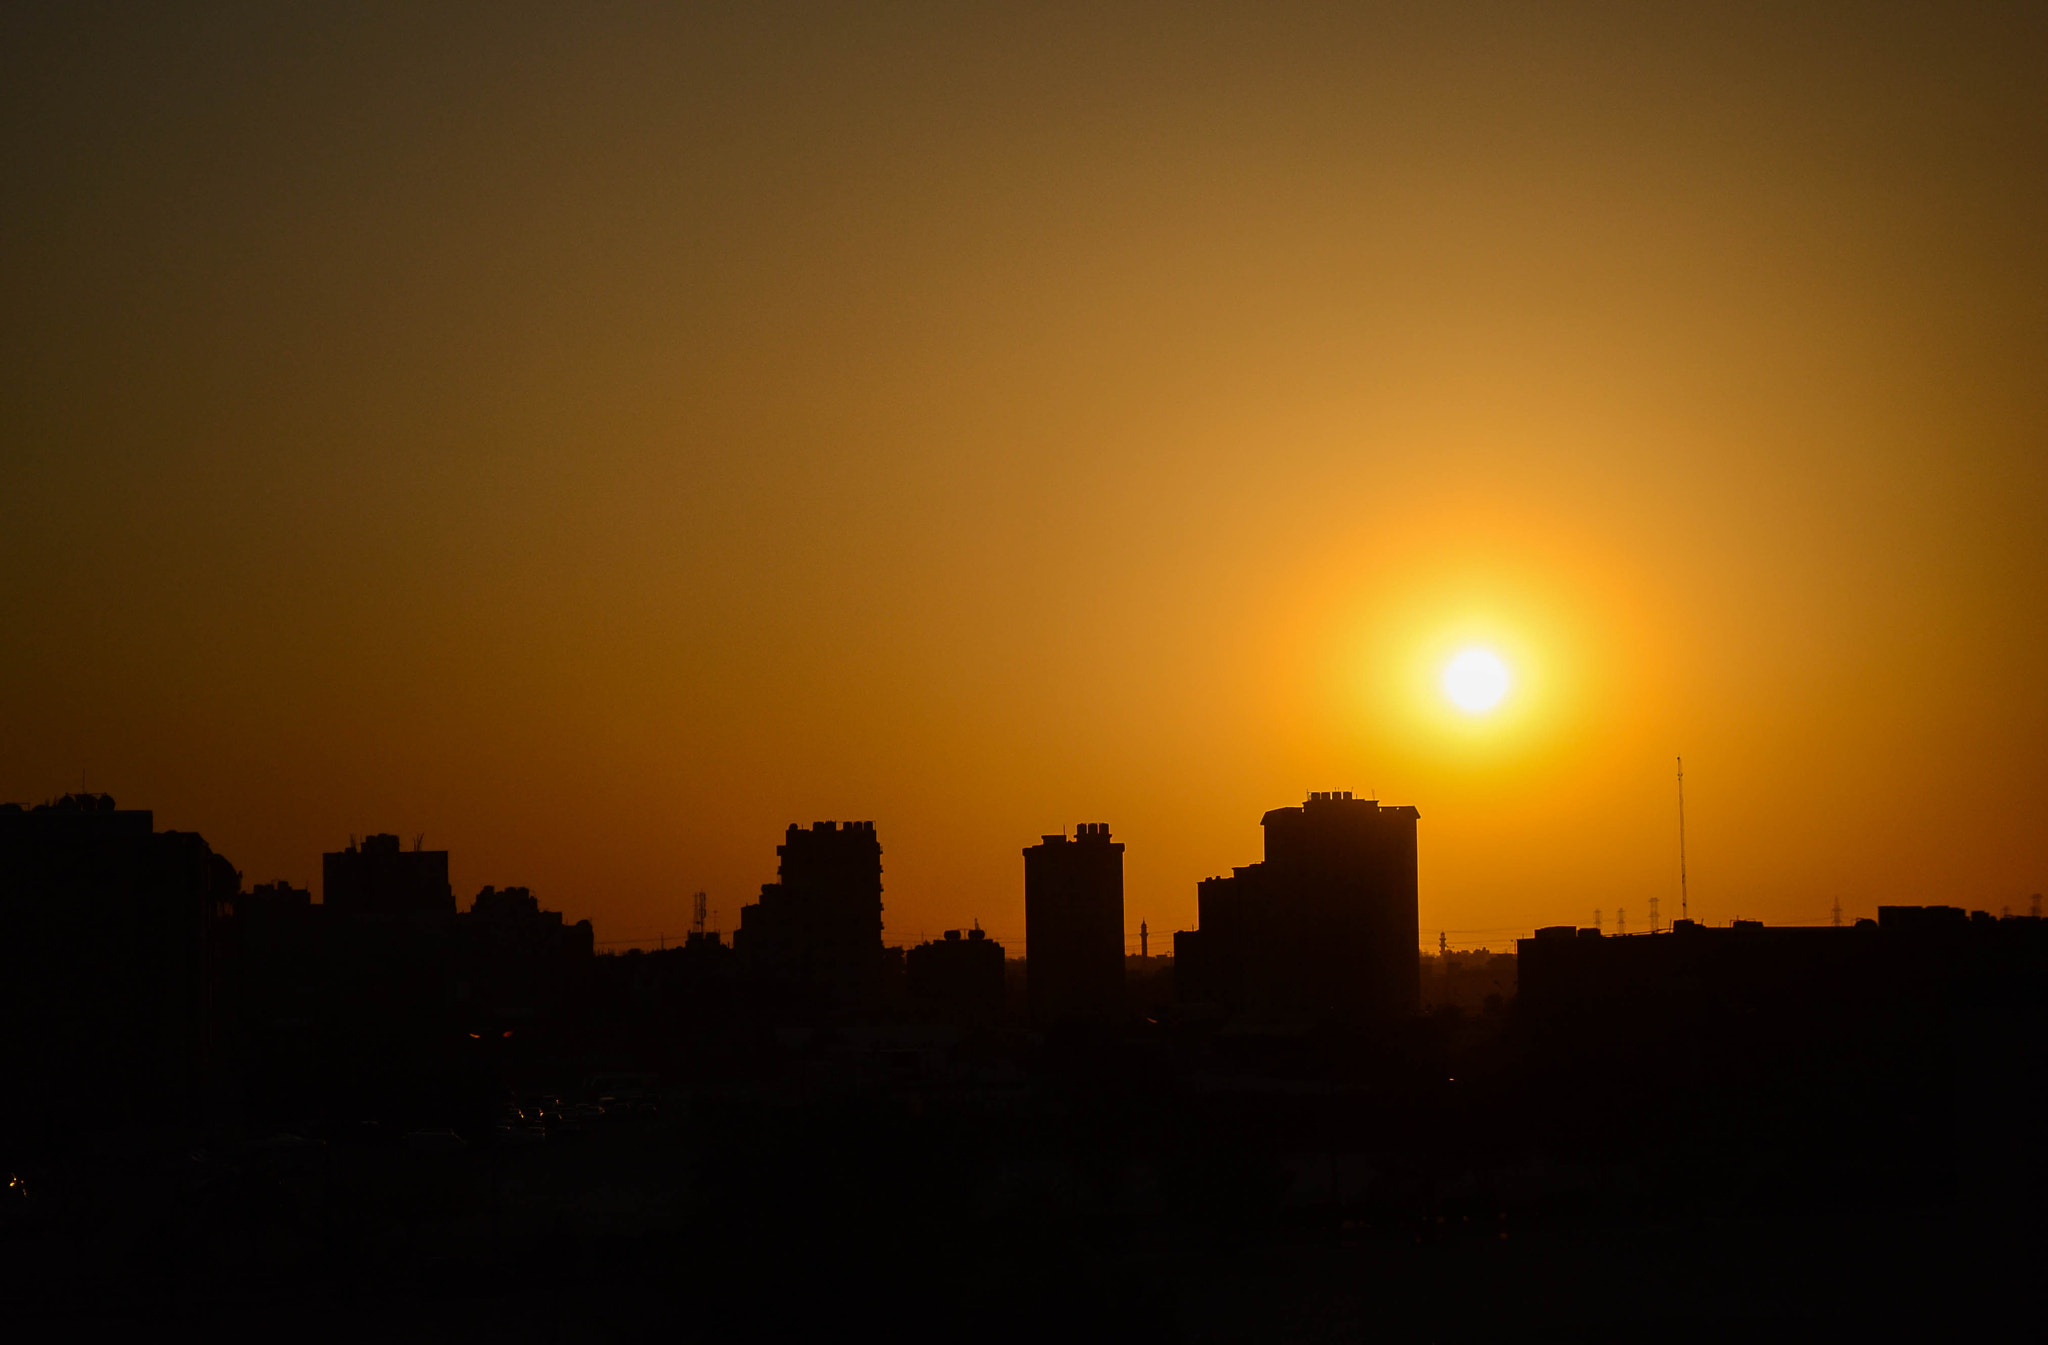 Photograph Silhouette - At Mangaf by Naveen Edakkat on 500px